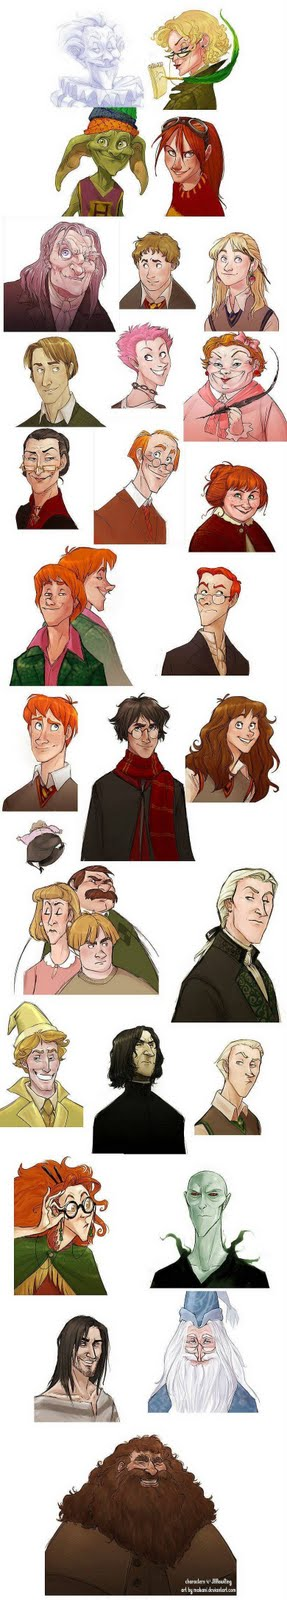 If Harry Potter was a Disney movie